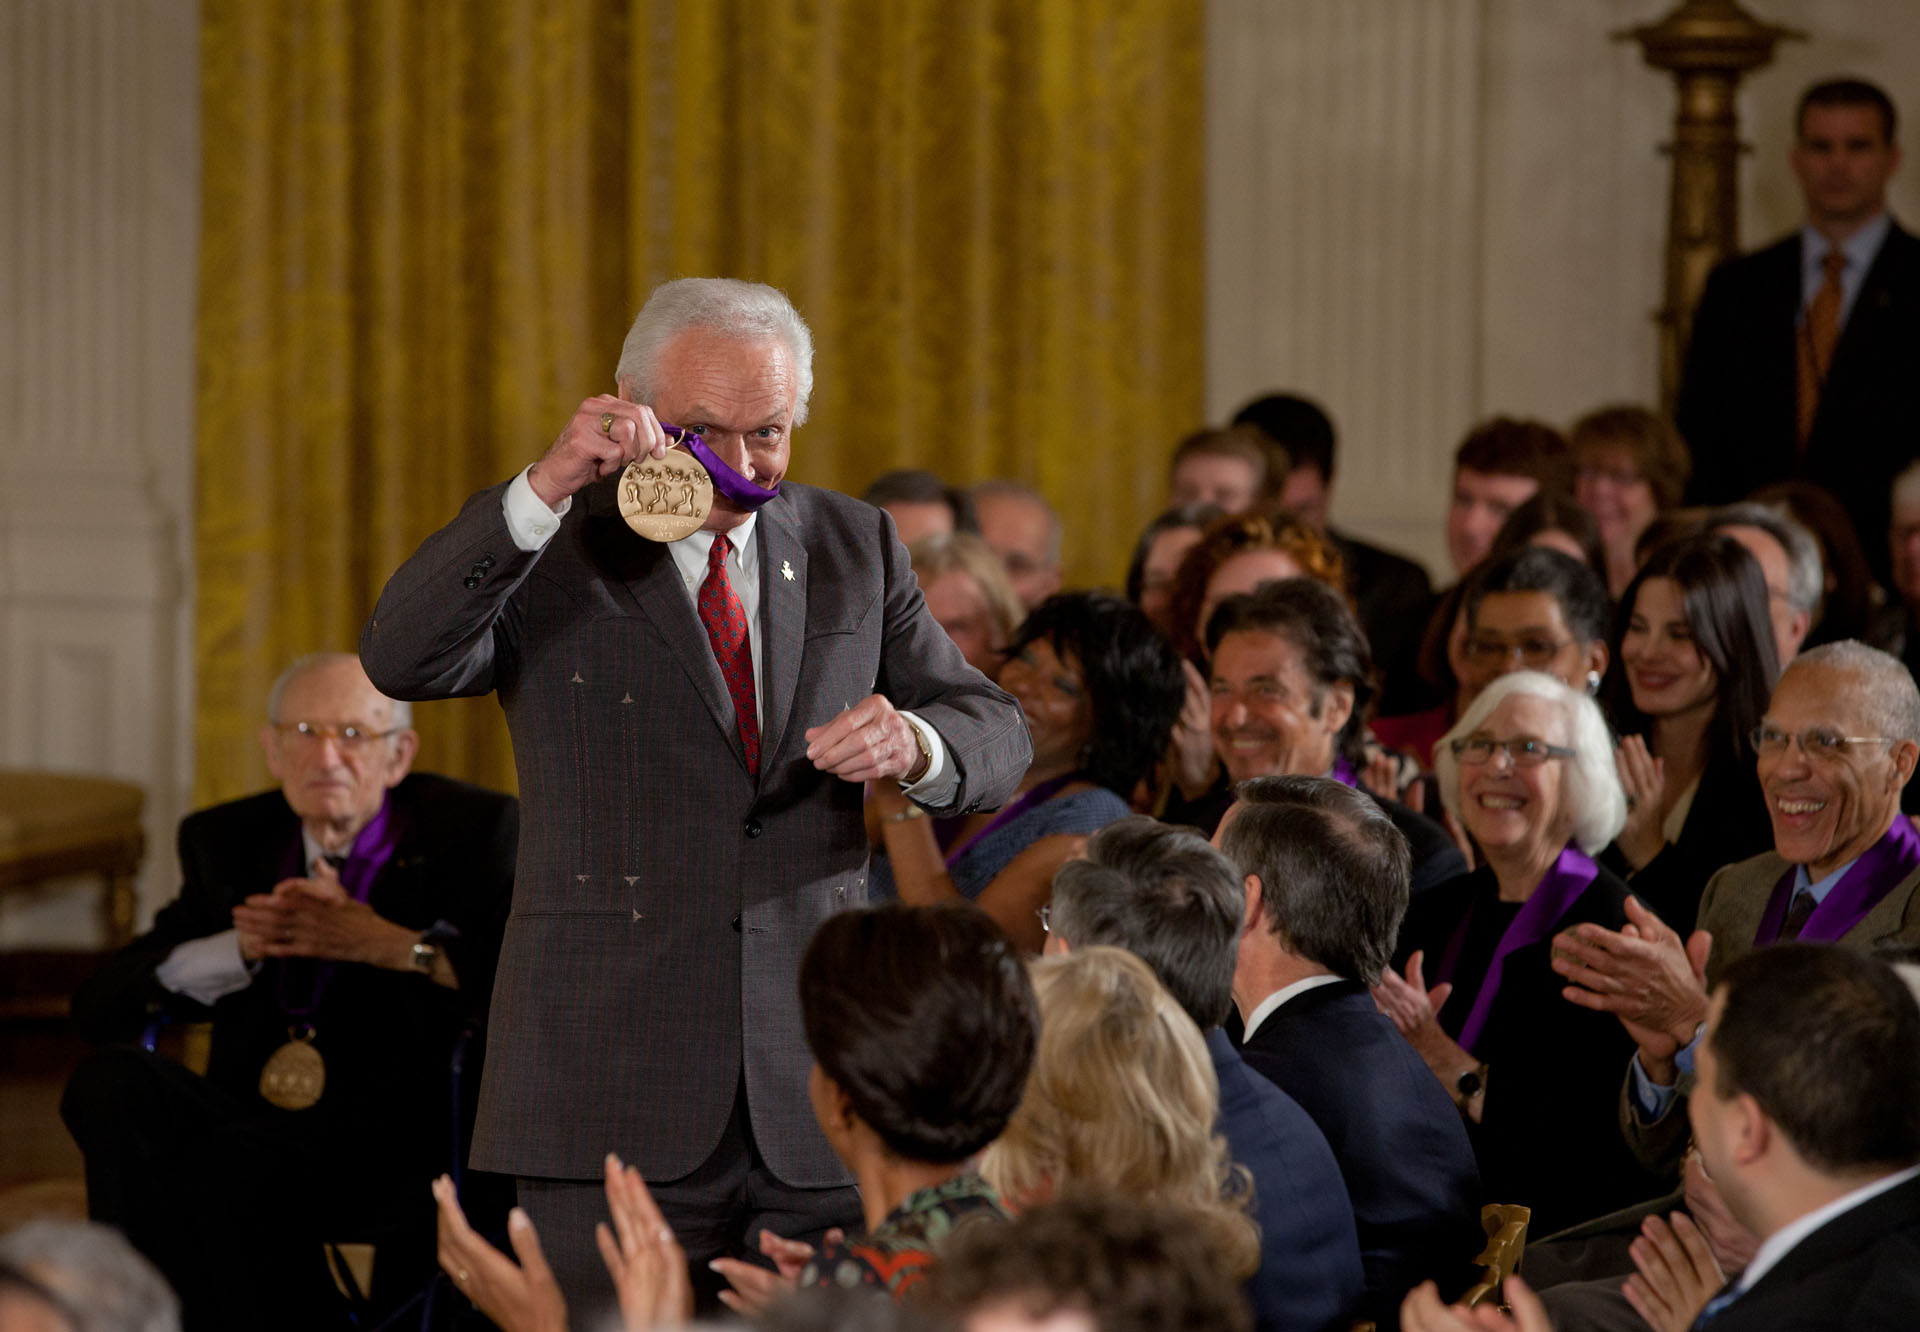 Mel Tillis shows off his 2011 National Medal of Arts